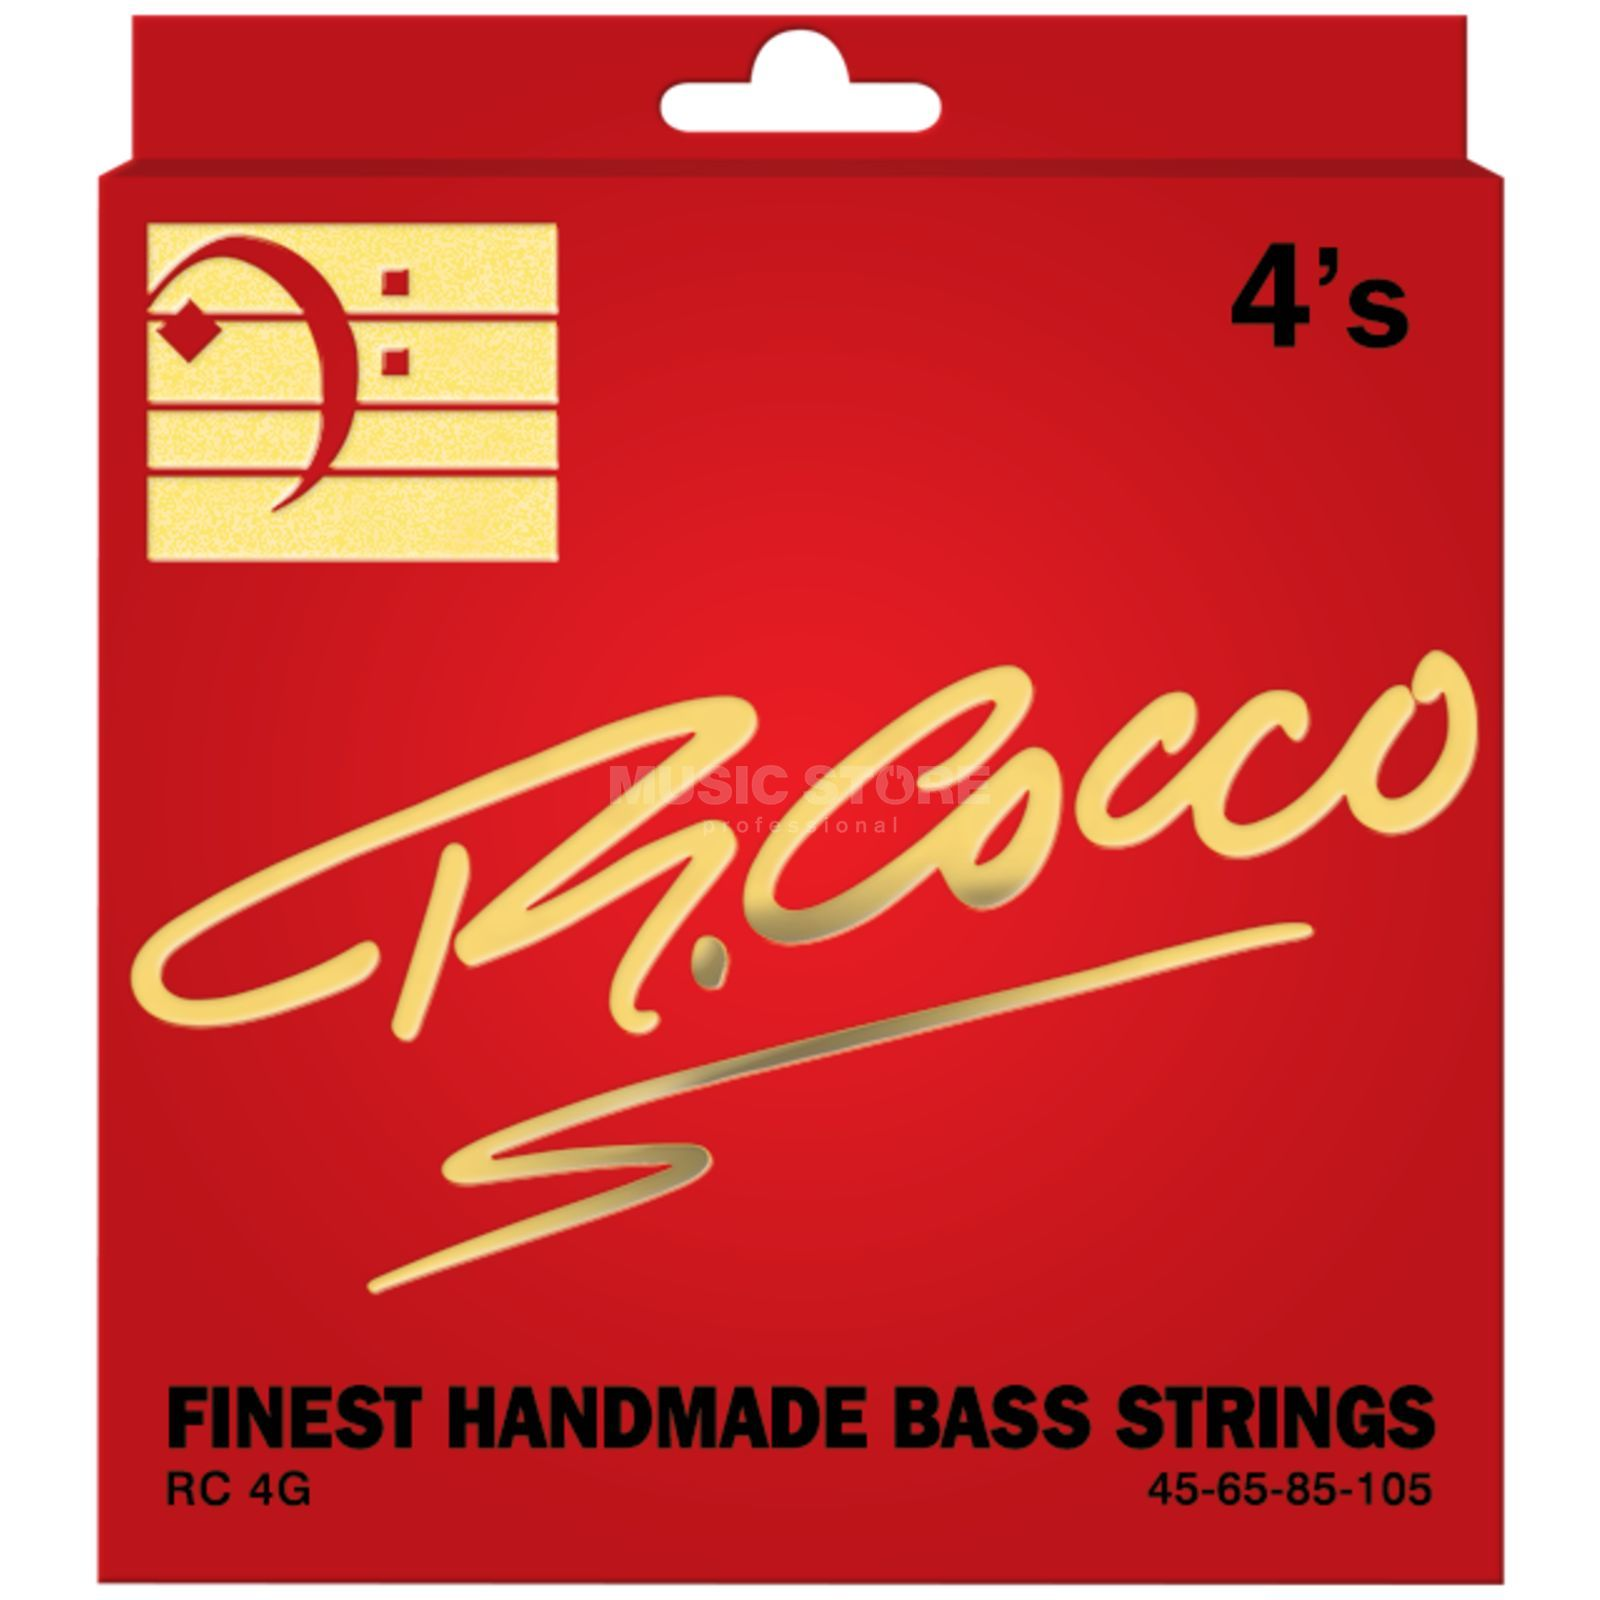 Cocco RC4G Bass Strings 45-105 4 Set, 45-65-85-105  Classic Wound Zdjęcie produktu